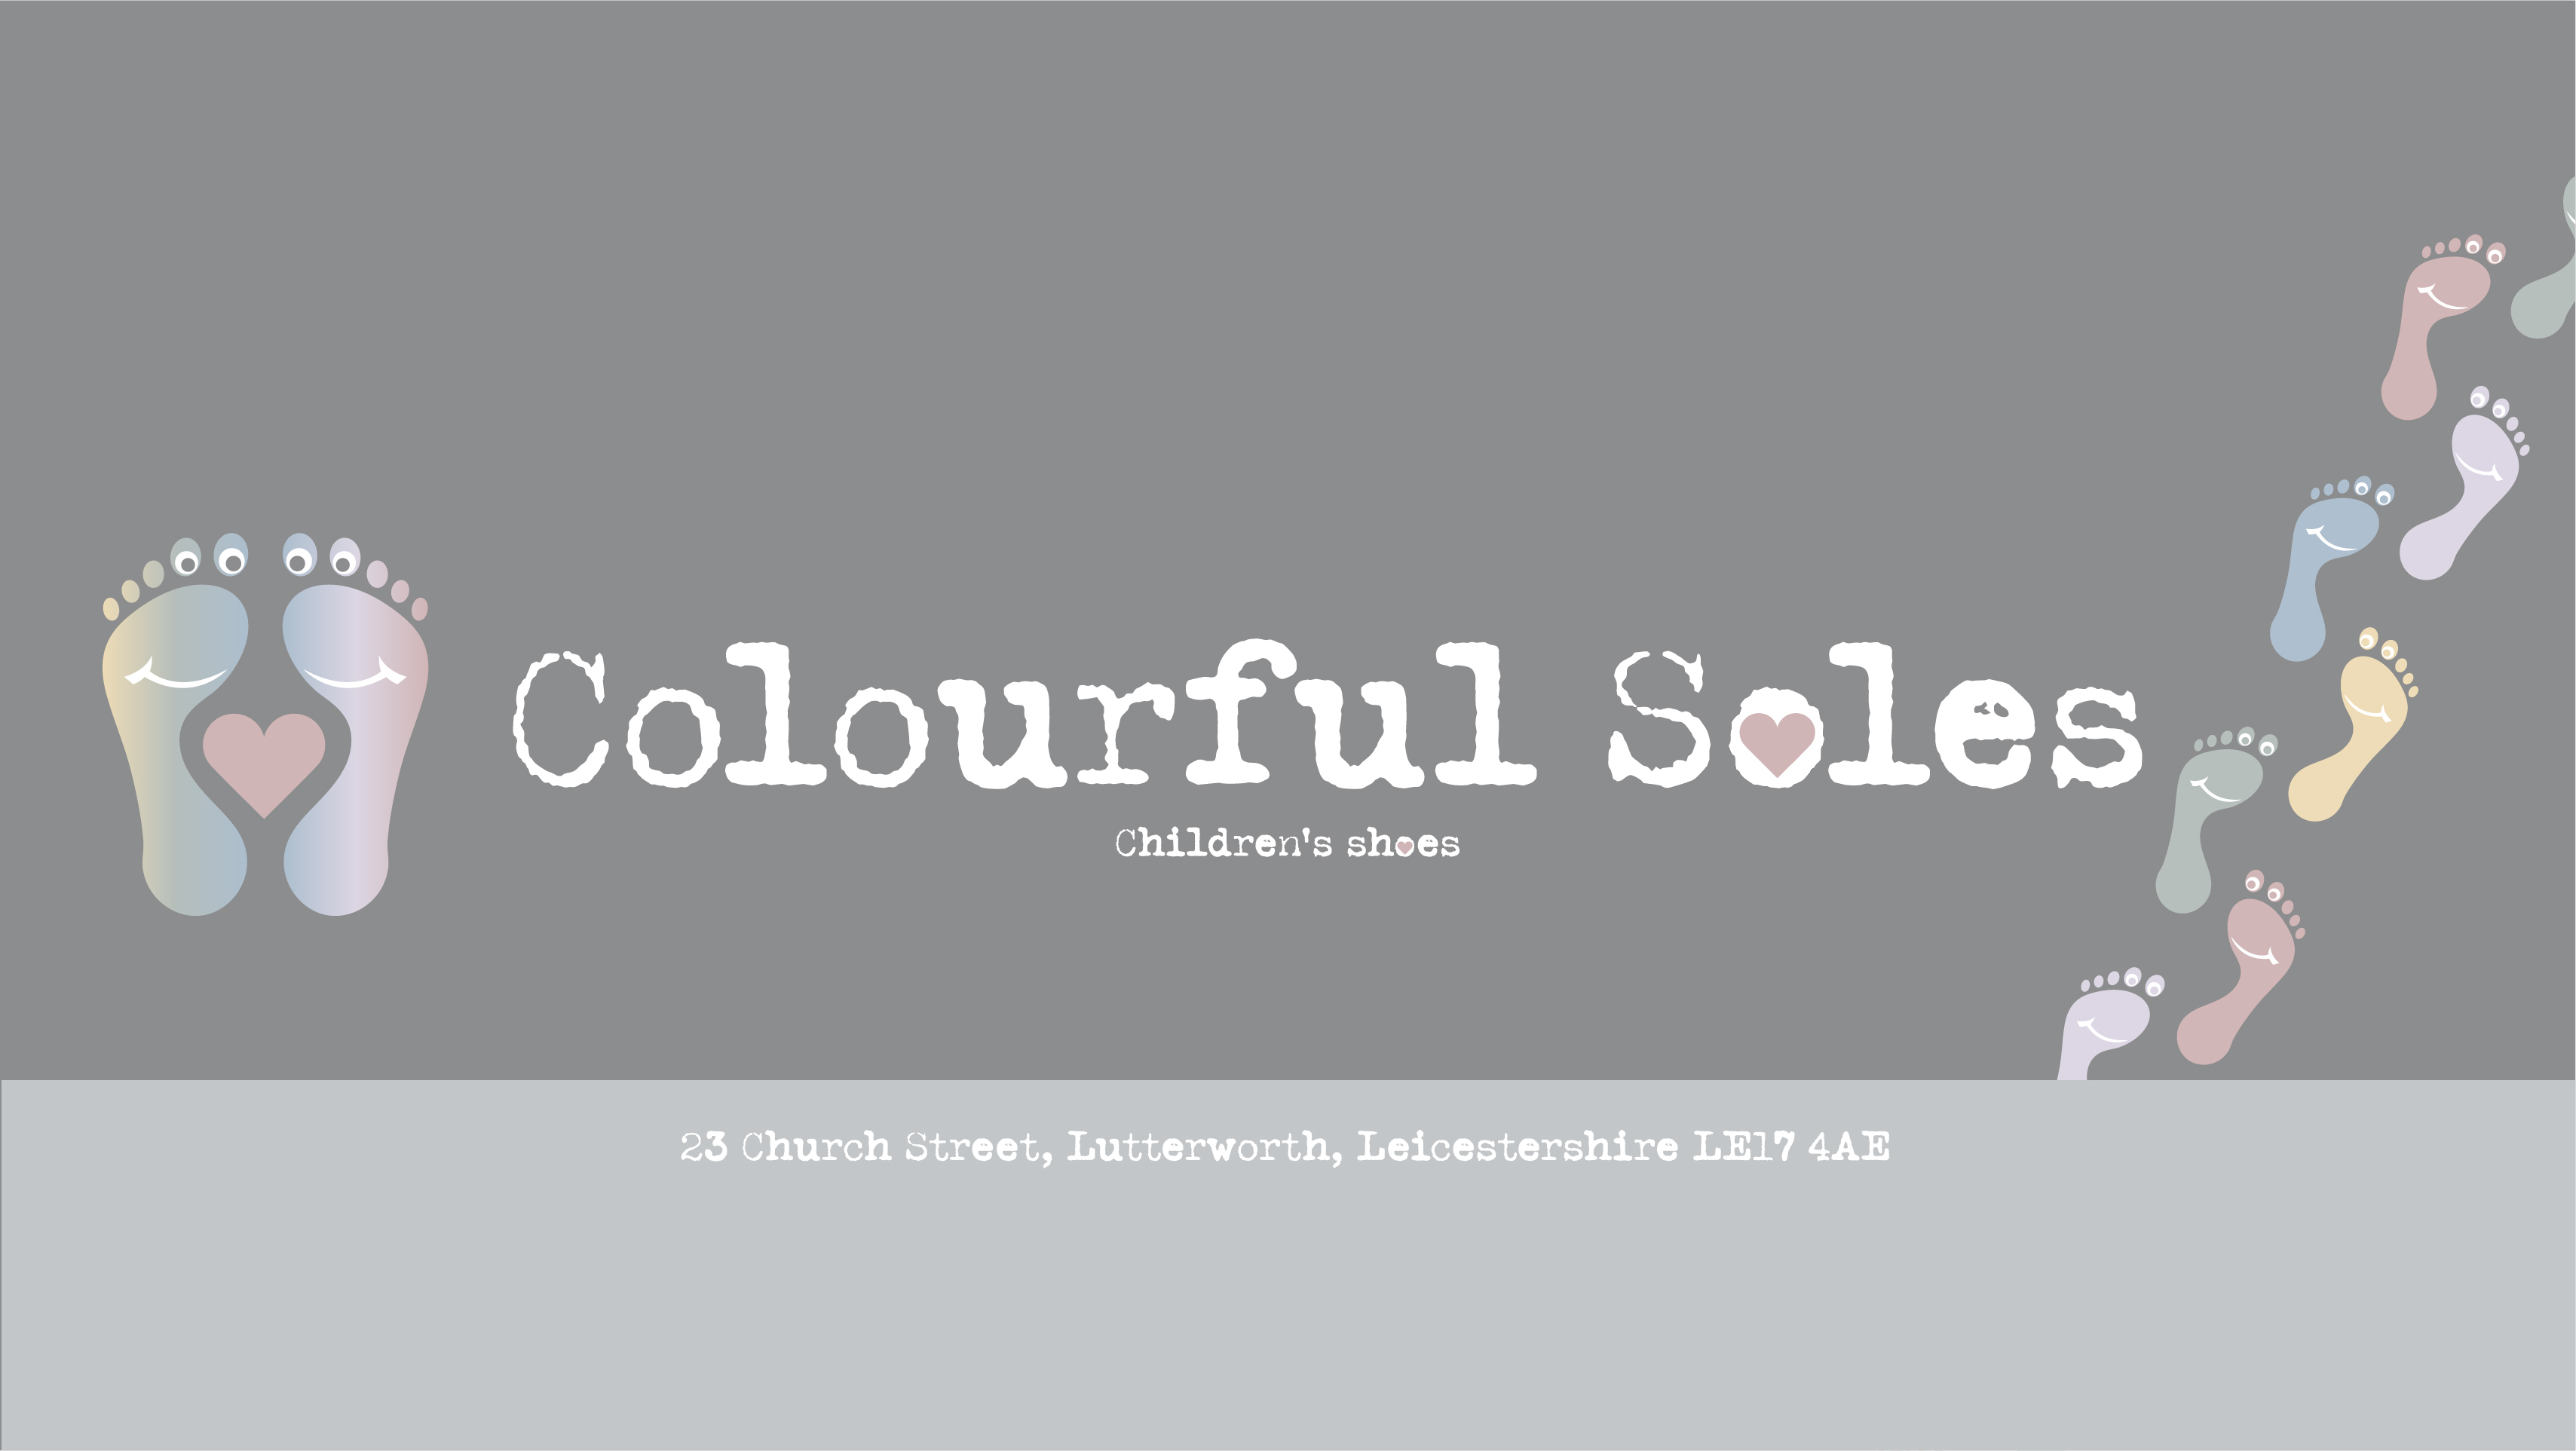 Colourful Soles Ltd's main image